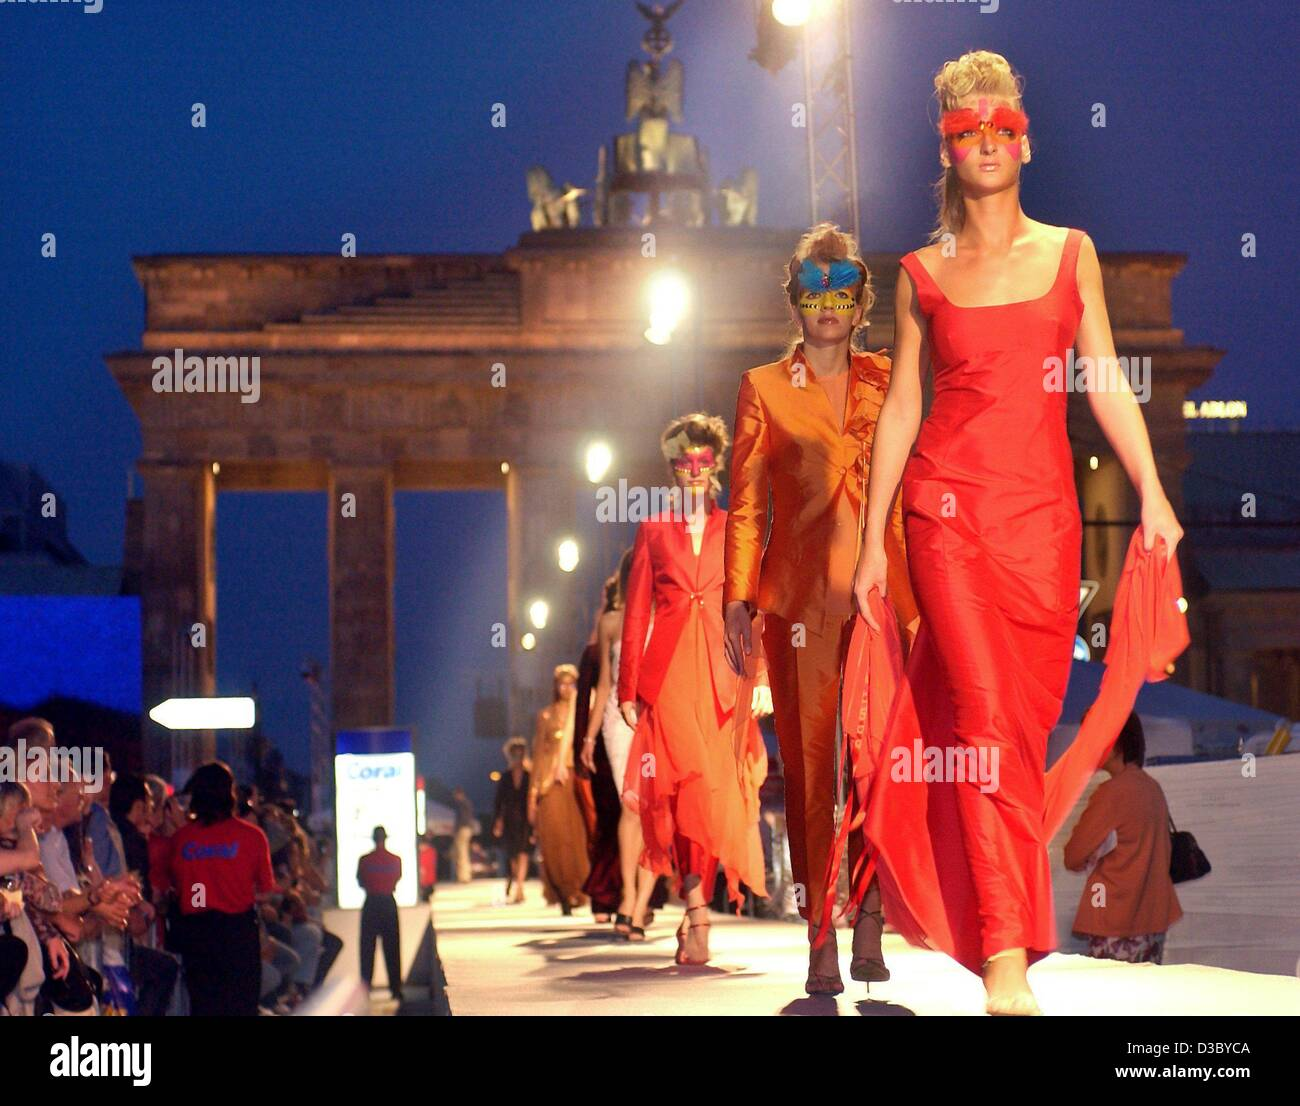 (dpa) - Fashion models present the creations of various designers during the Coral Fashion Show, Germany's biggest - Stock Image